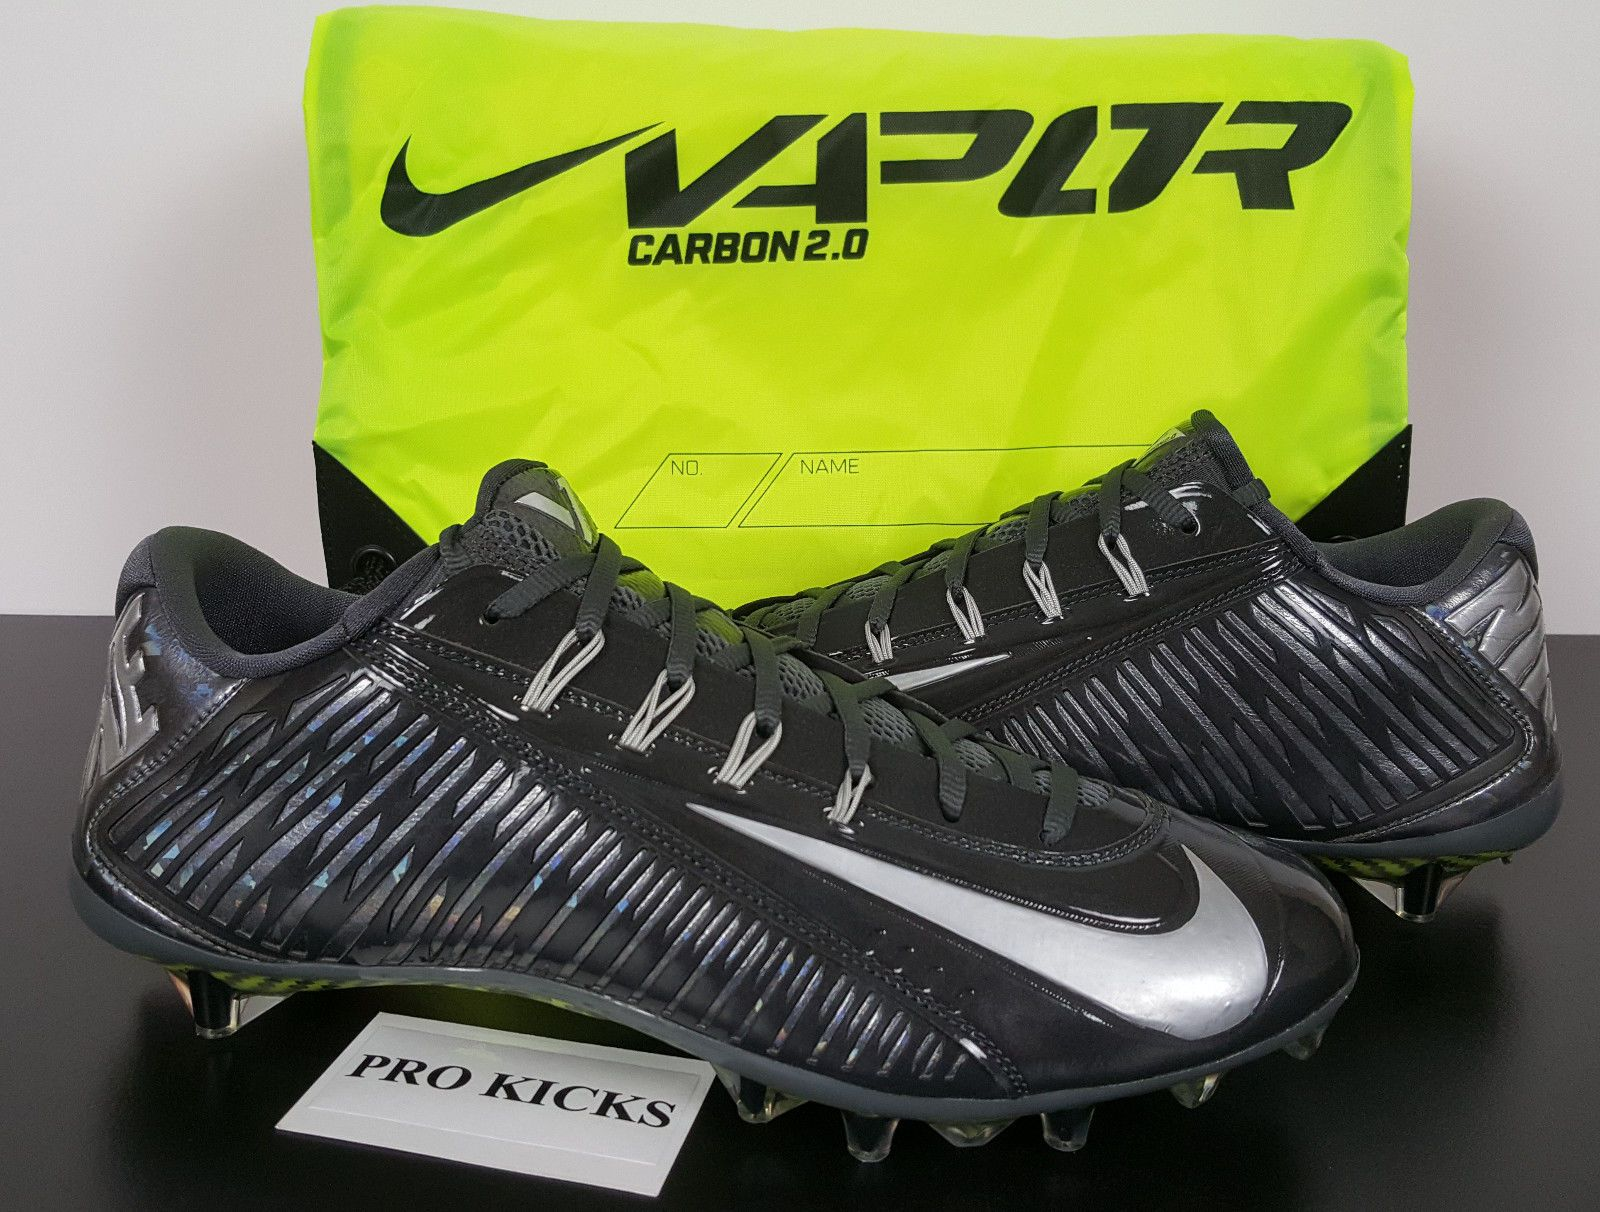 NIKE VAPOR CARBON 2.0 ELITE FOOTBALL CLEATS ANTHRACITE GREY 631425-001  (SIZE 14)